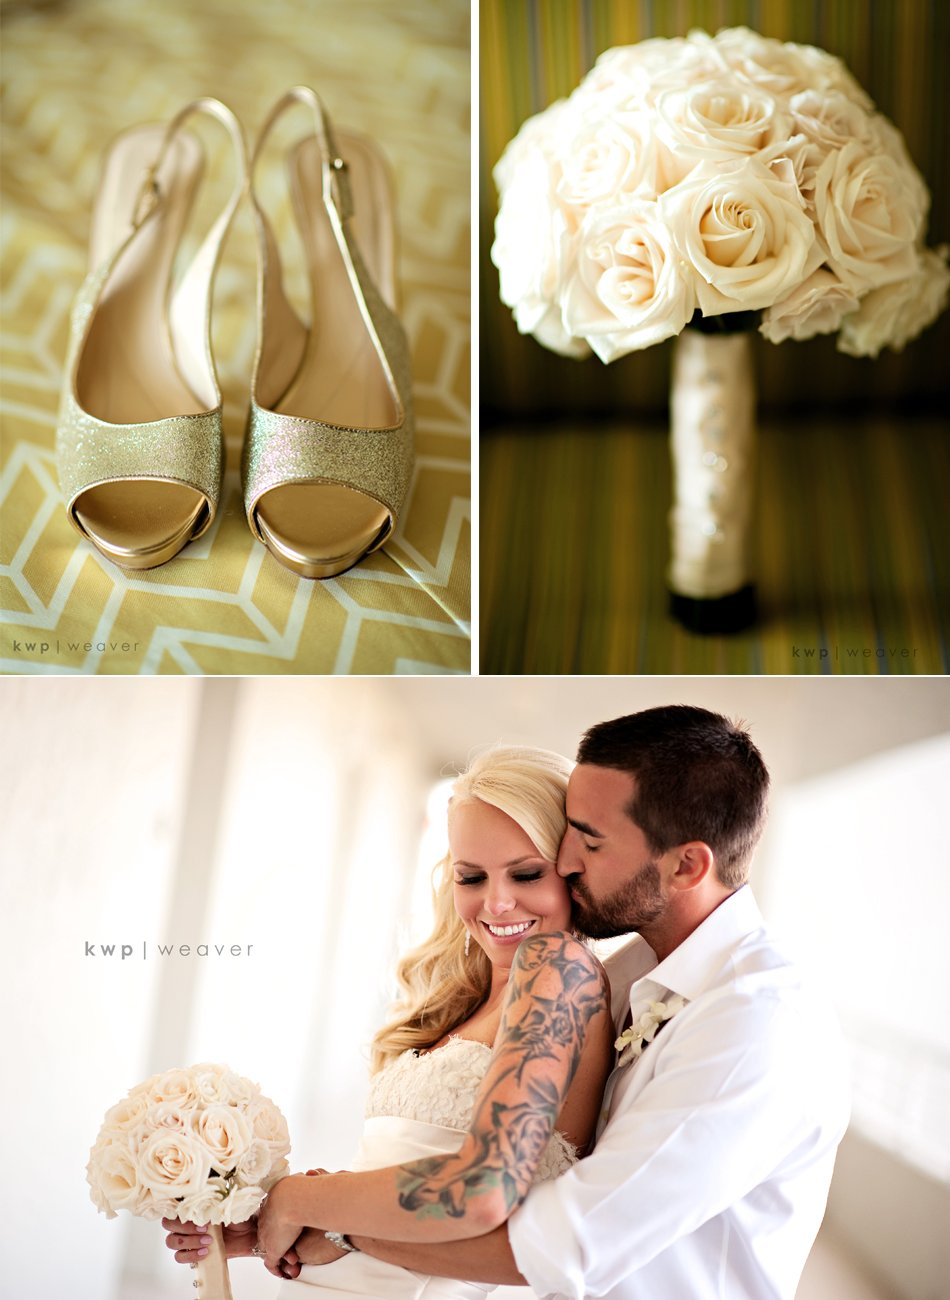 Kw-edgy-bride-holds-ivory-bridal-bouquet-gold-wedding-shoes.full